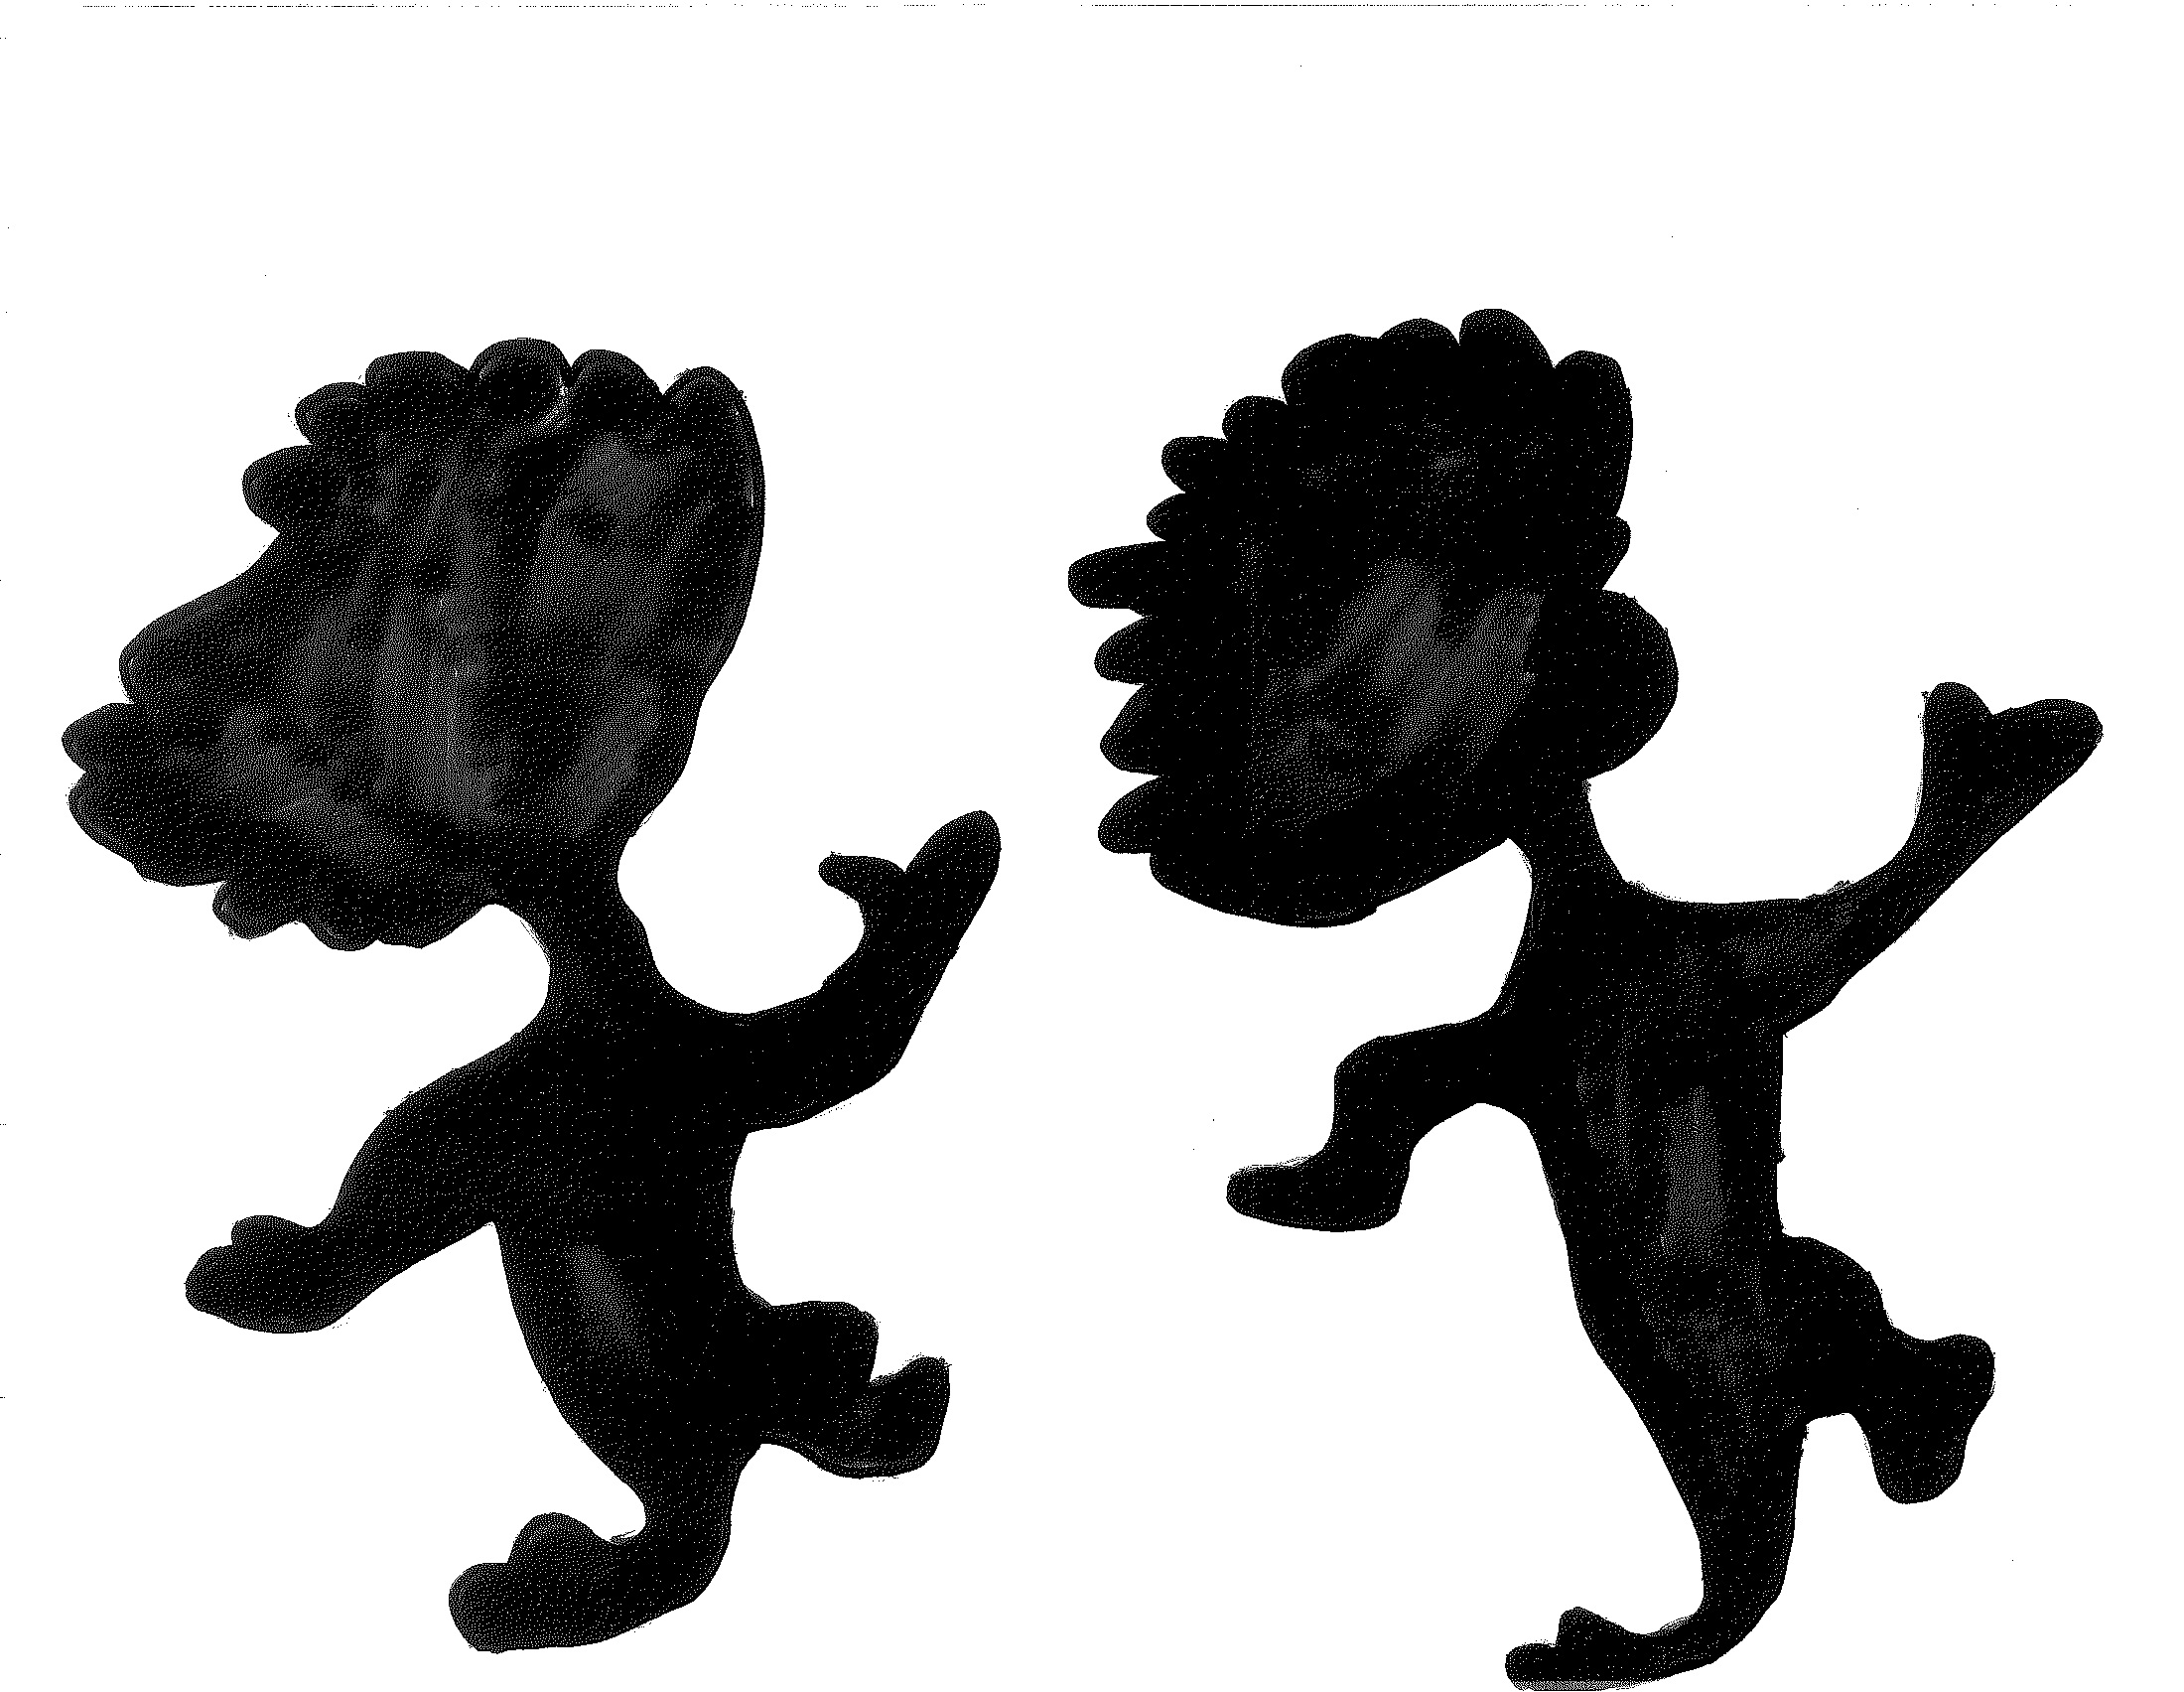 2200x1704 Thing 1 Amp Thing 2 Silhouette Dr. Suess Silhouettes